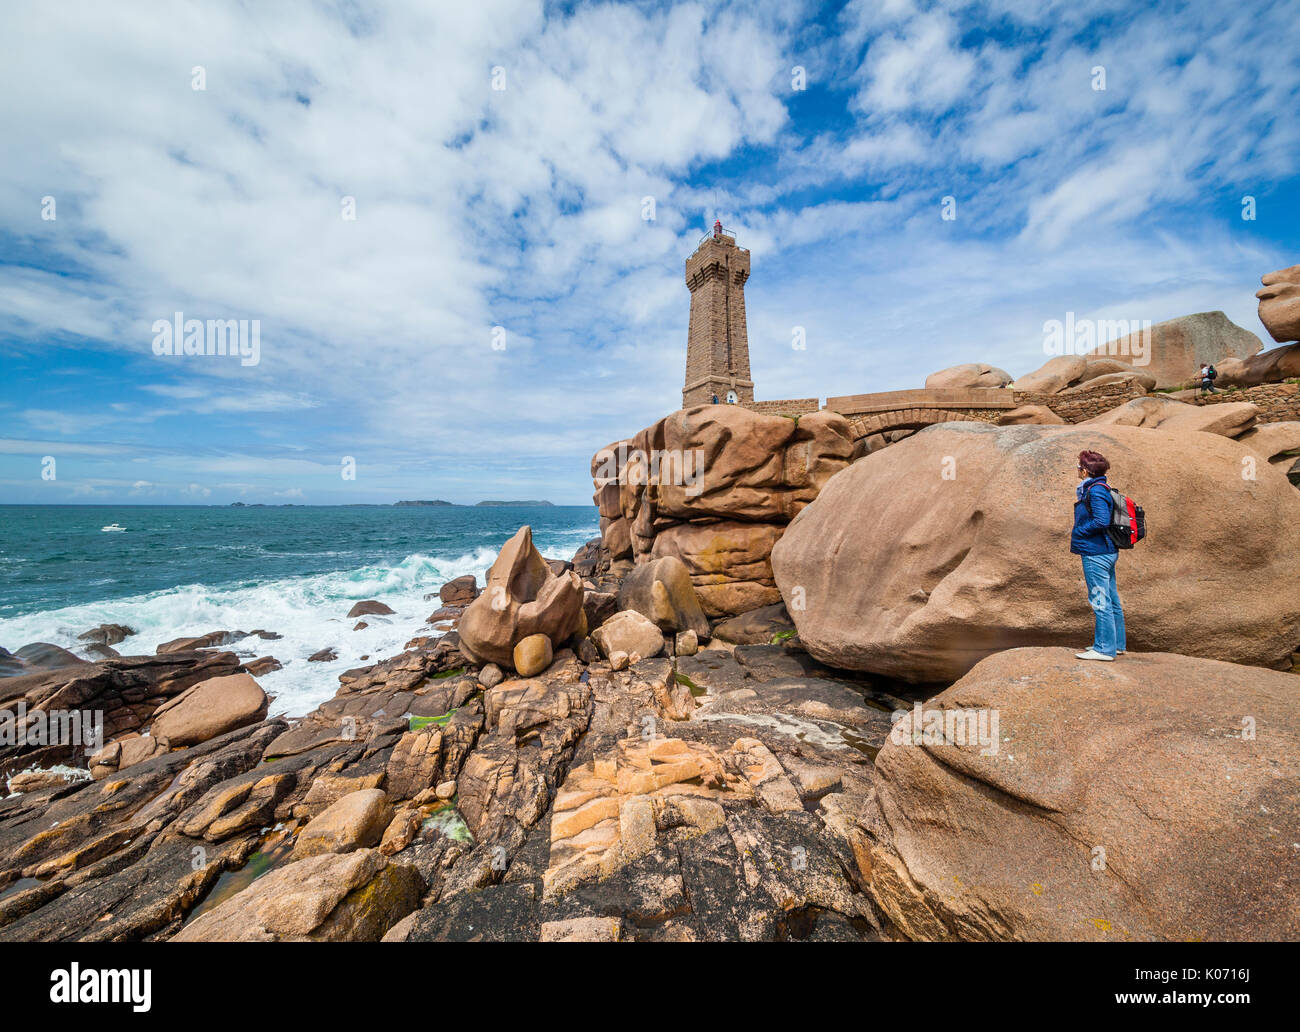 France, Brittany, Cotes d'Armor department, Cote de Granit Rose, Ploumanac'h lighthouse at the Sentier des Douaniers (old customs officers Path) - Stock Image